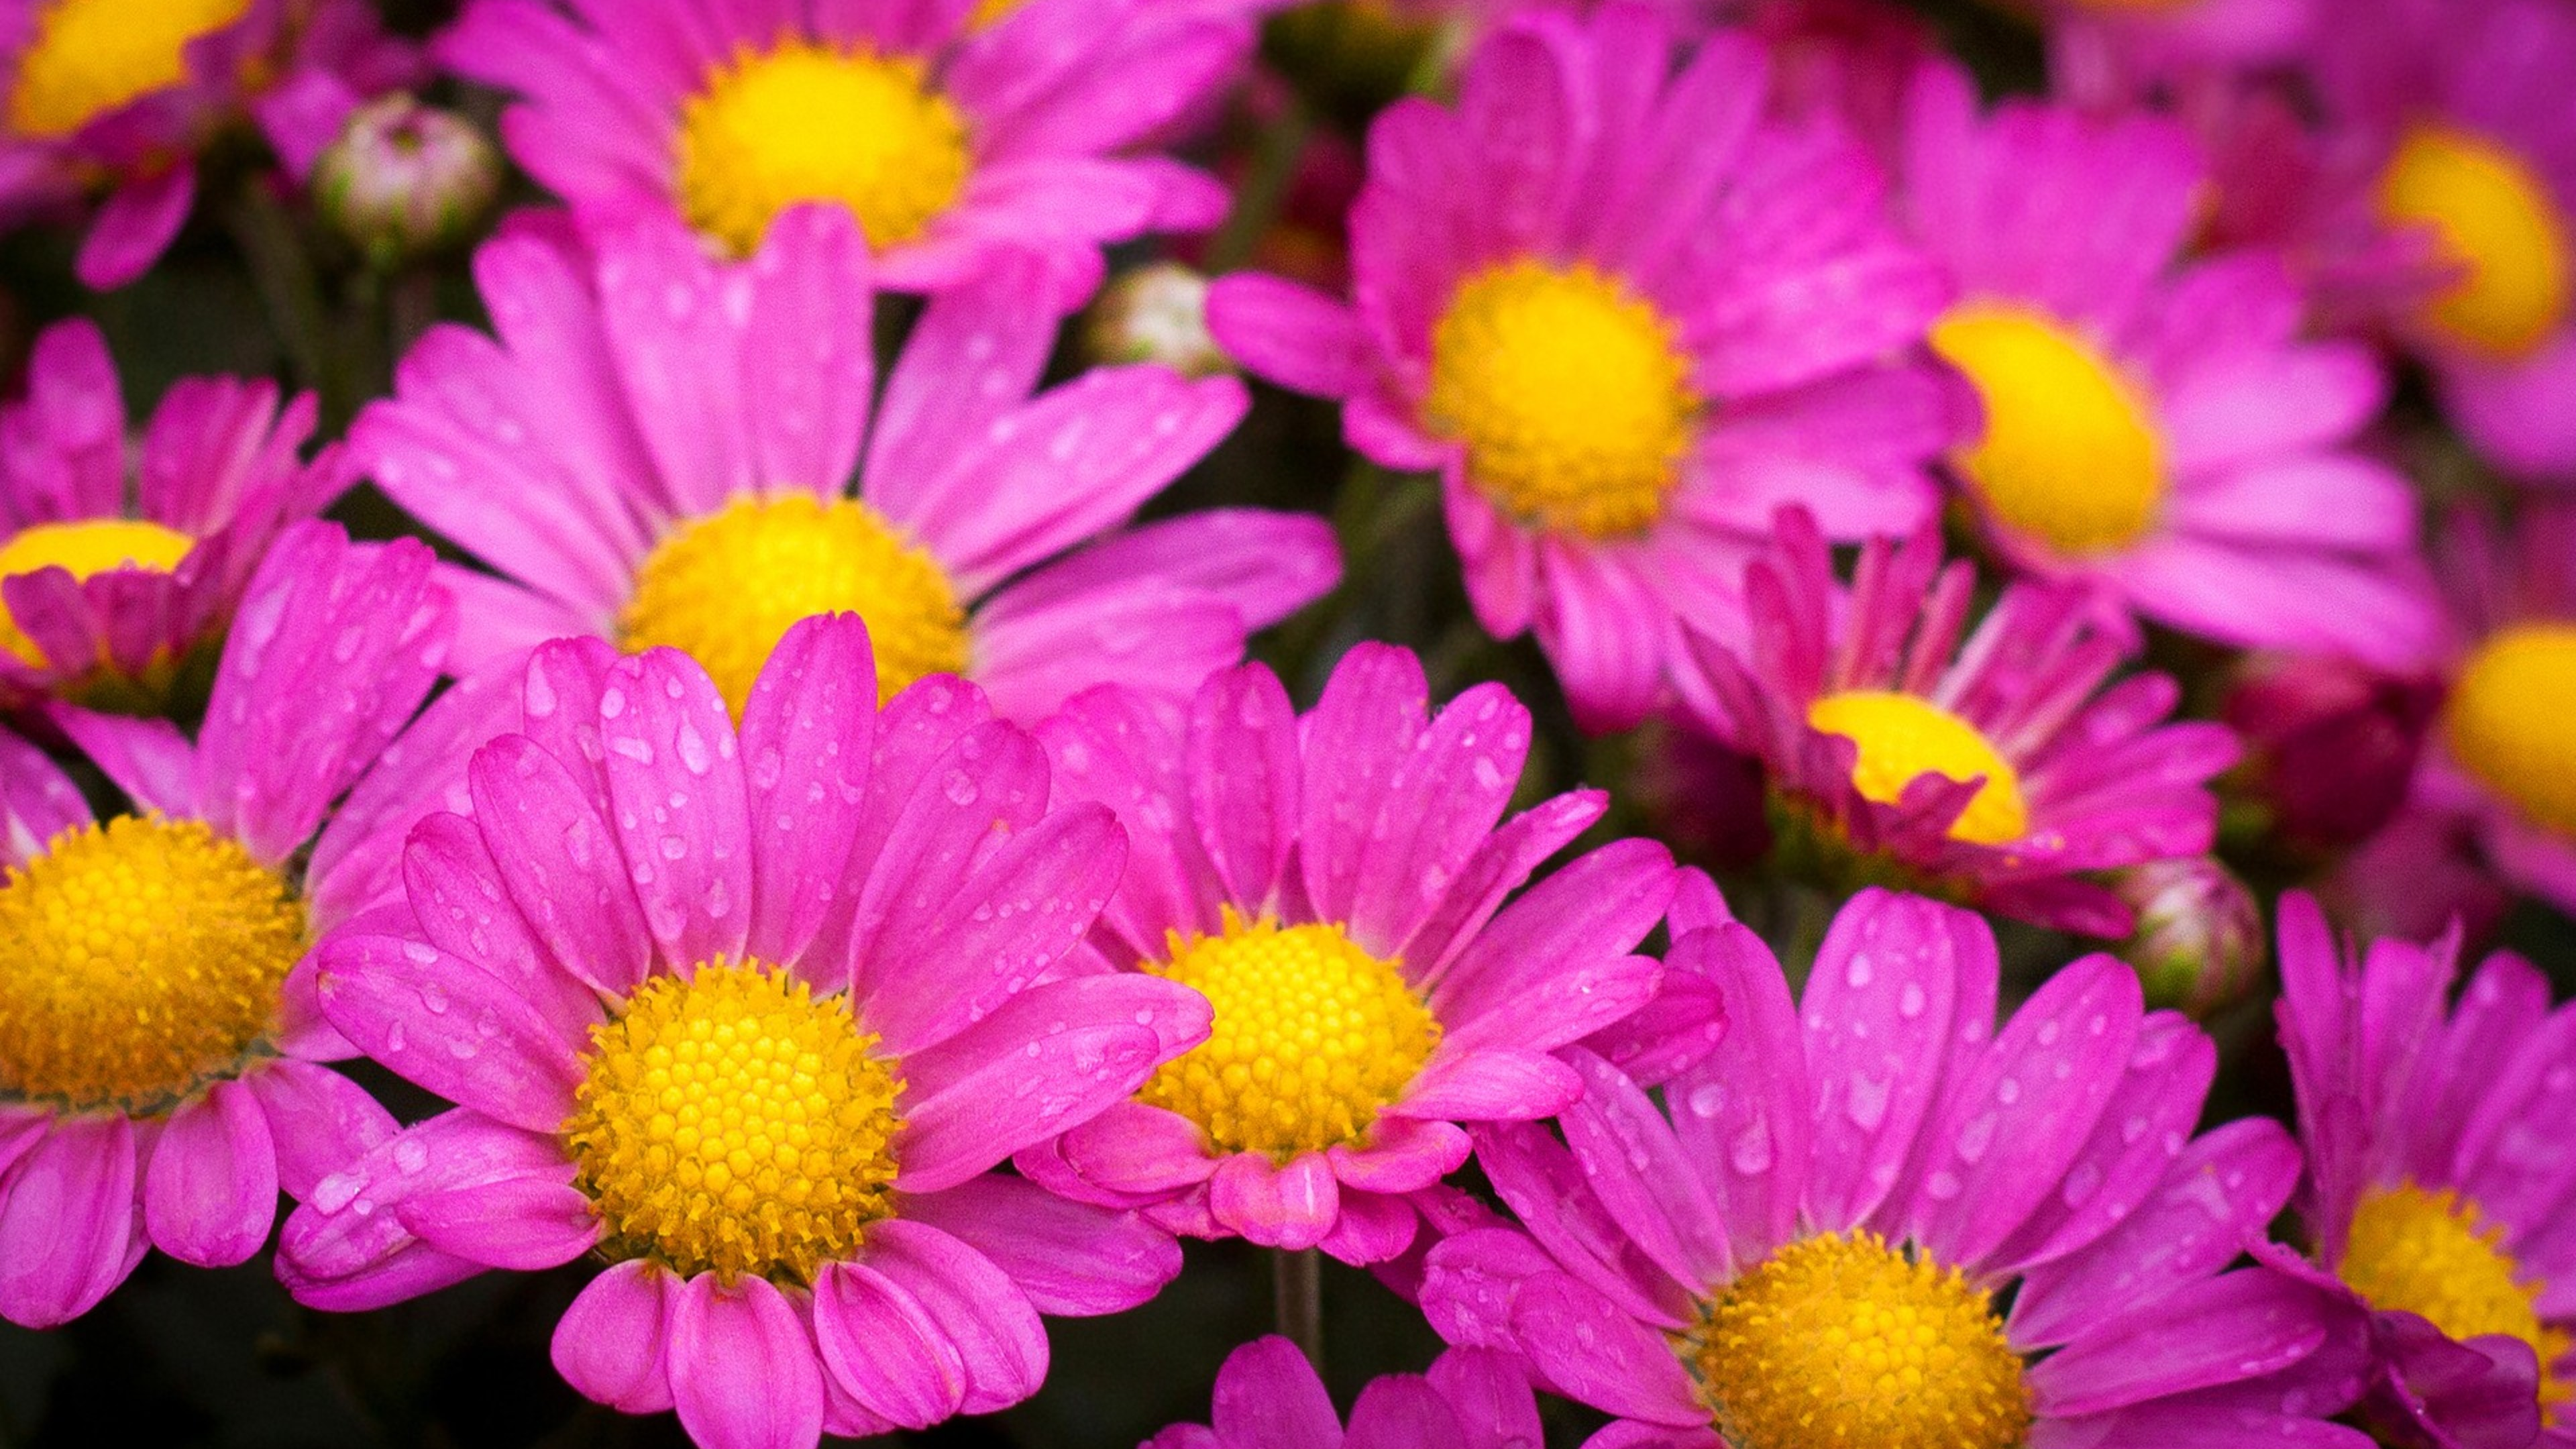 Water Drops On Pink Daisies